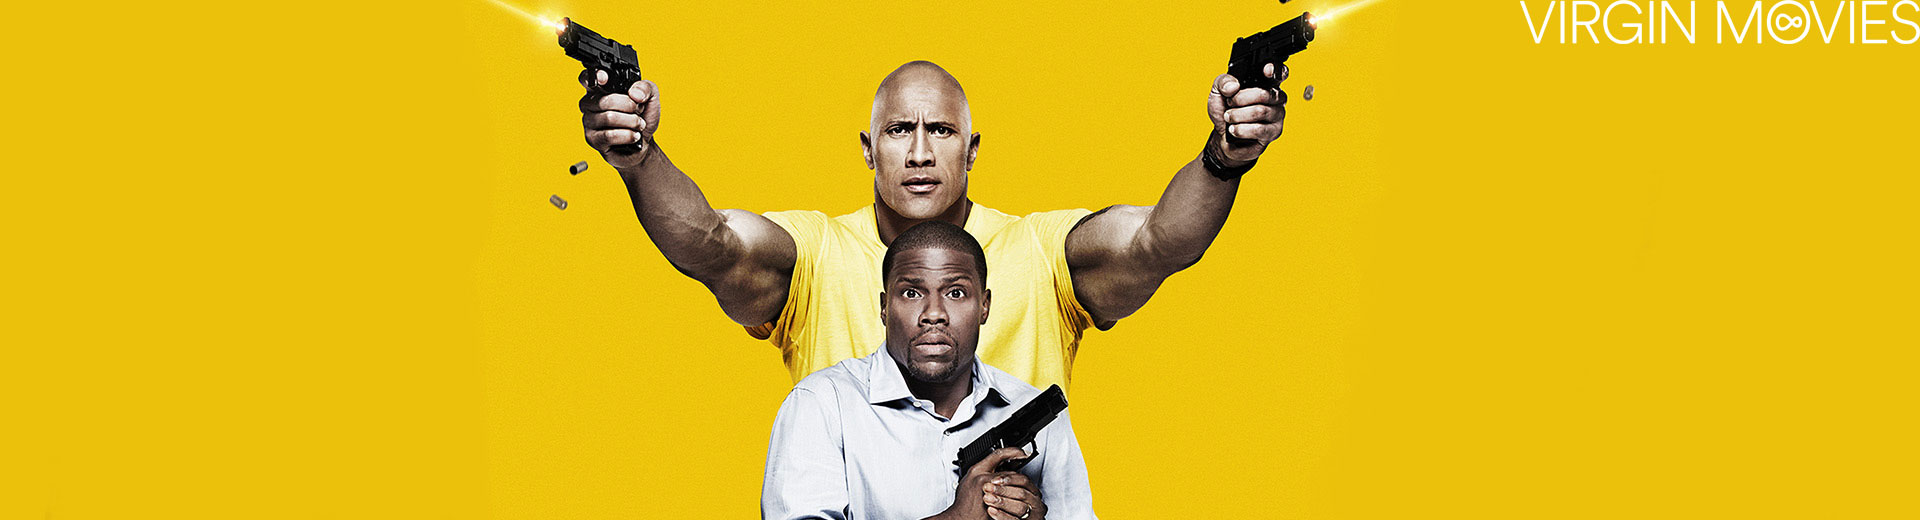 Central Intelligence – available now on Virgin Movies